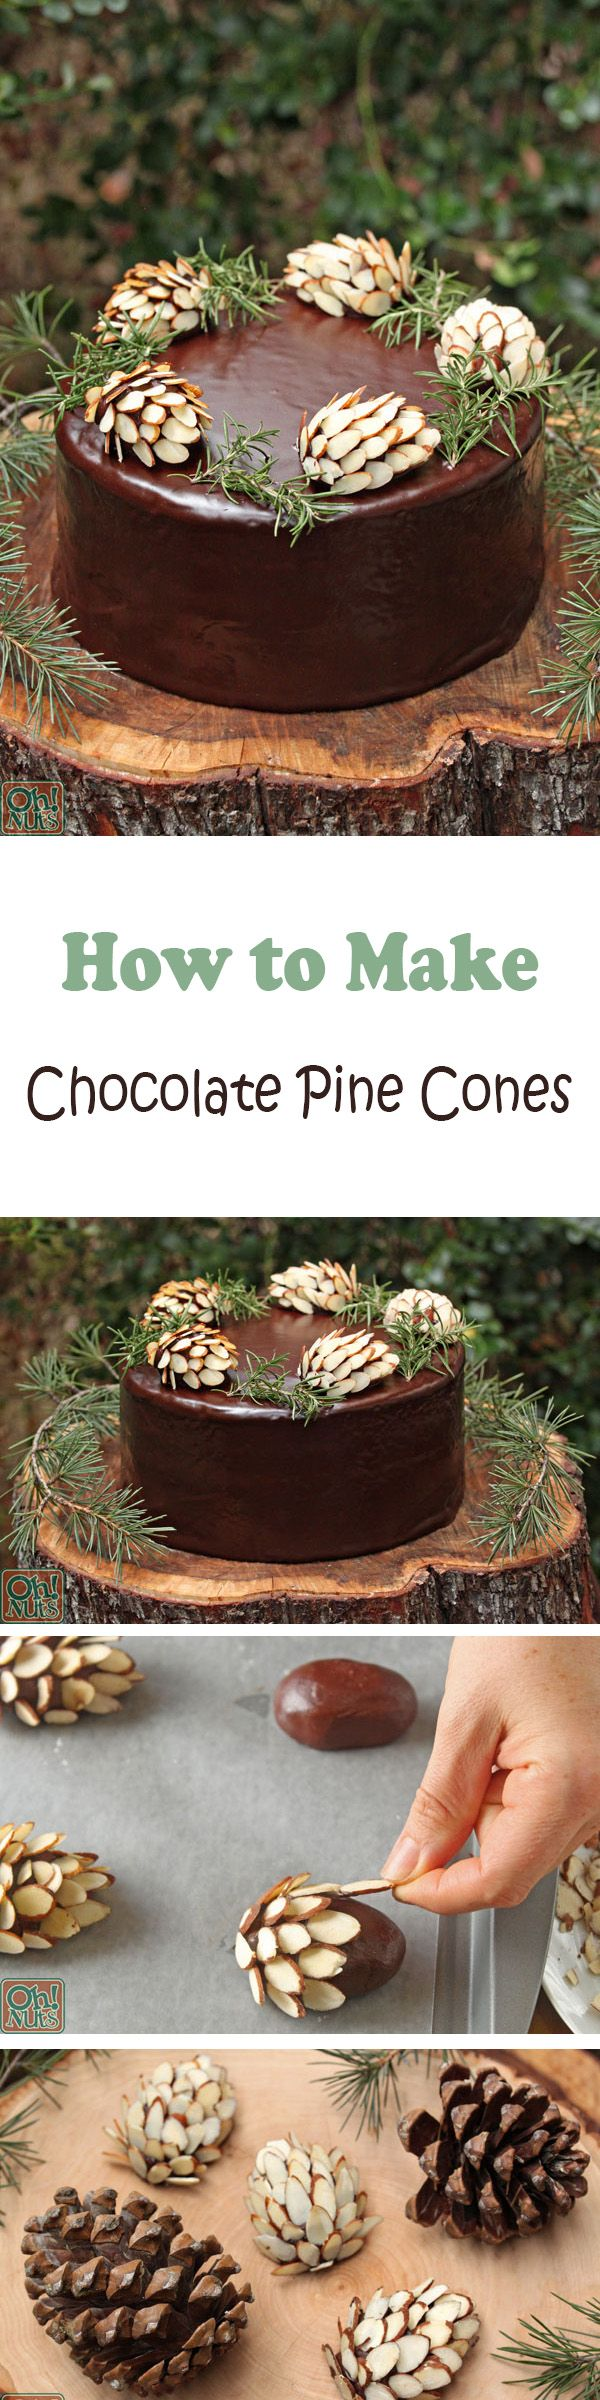 chocolate pine cones beautiful and so simple! ..tutorial